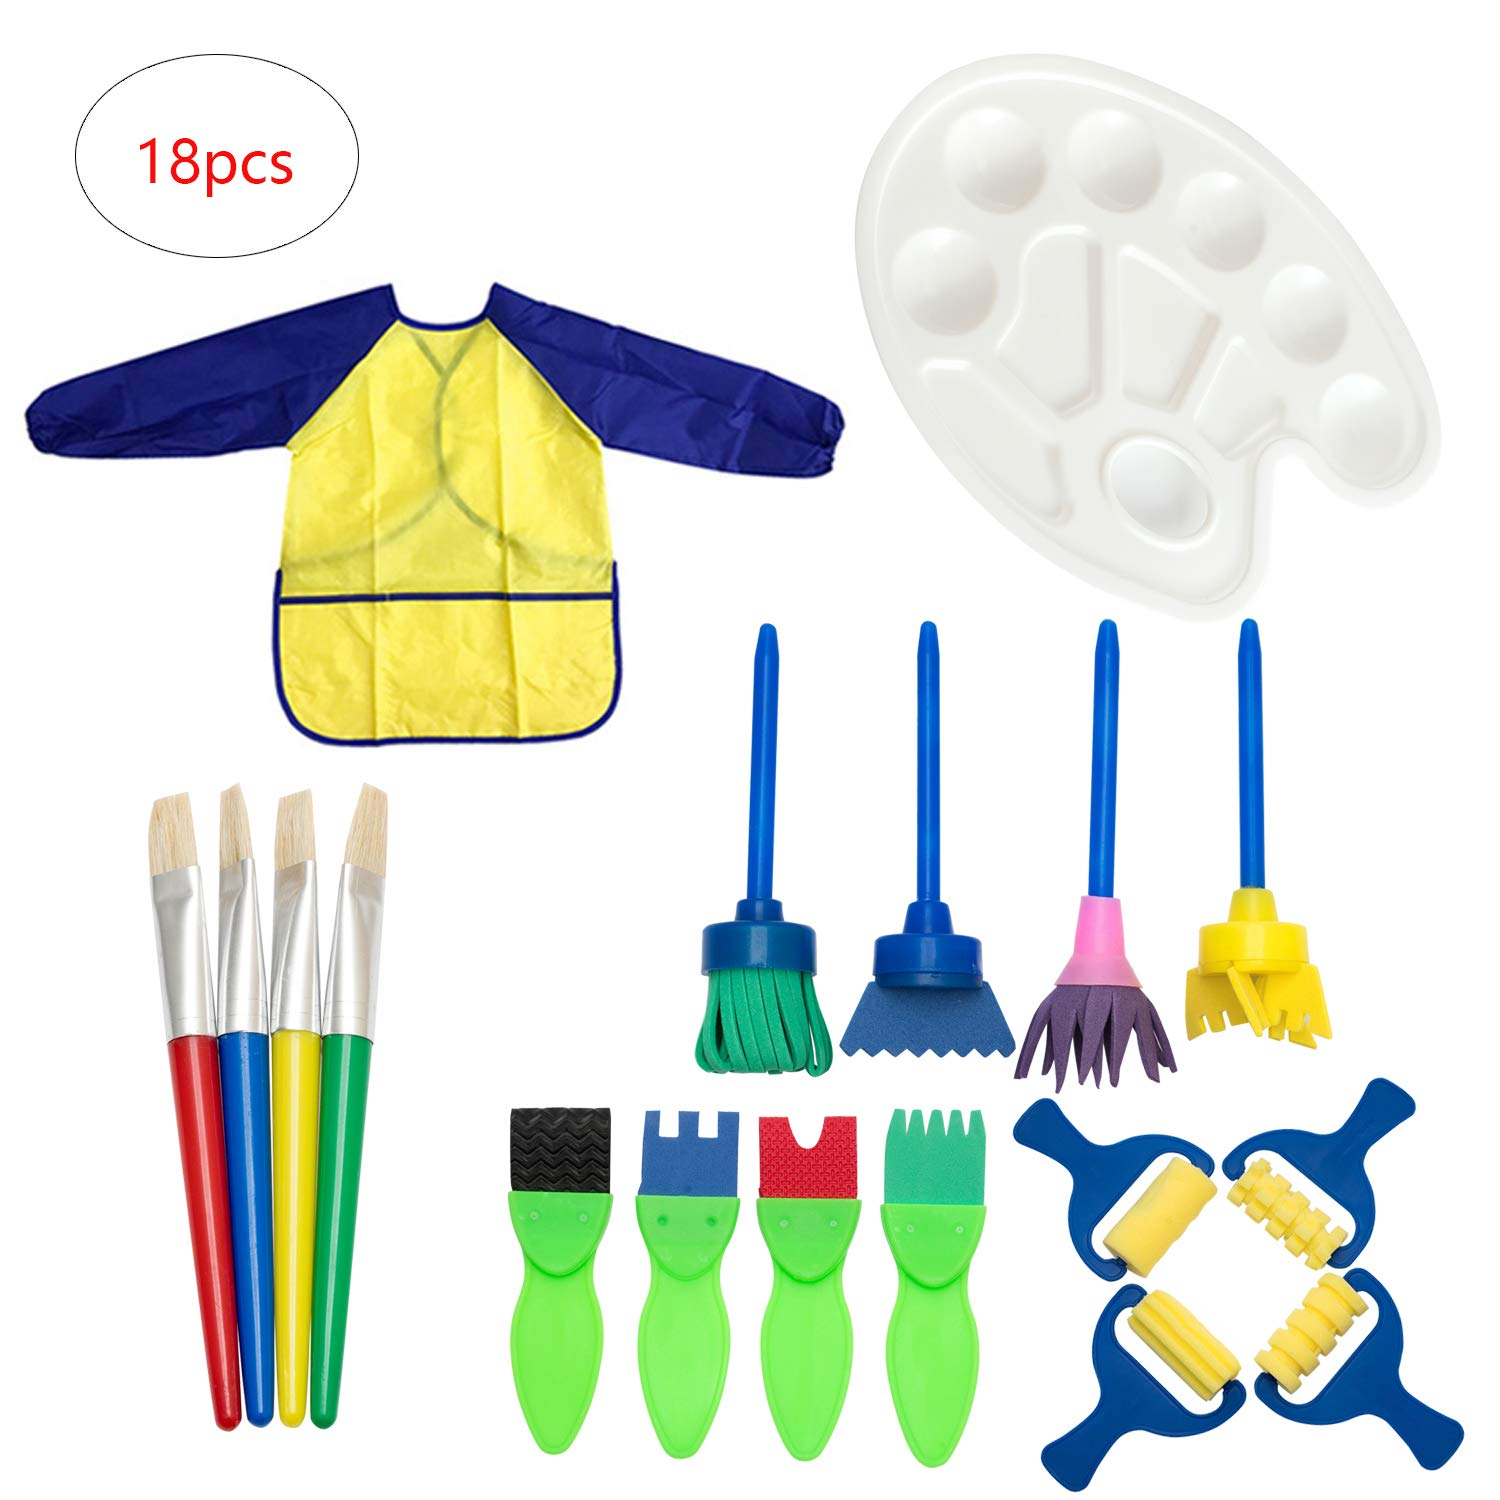 YINASI Paint Sponges for Kids, 18pcs Painting Brushes Art Supplies Set with Palette,Smock and Rollers Brush DIY Craft Drawing Toy for Boys and Girls by YINASI